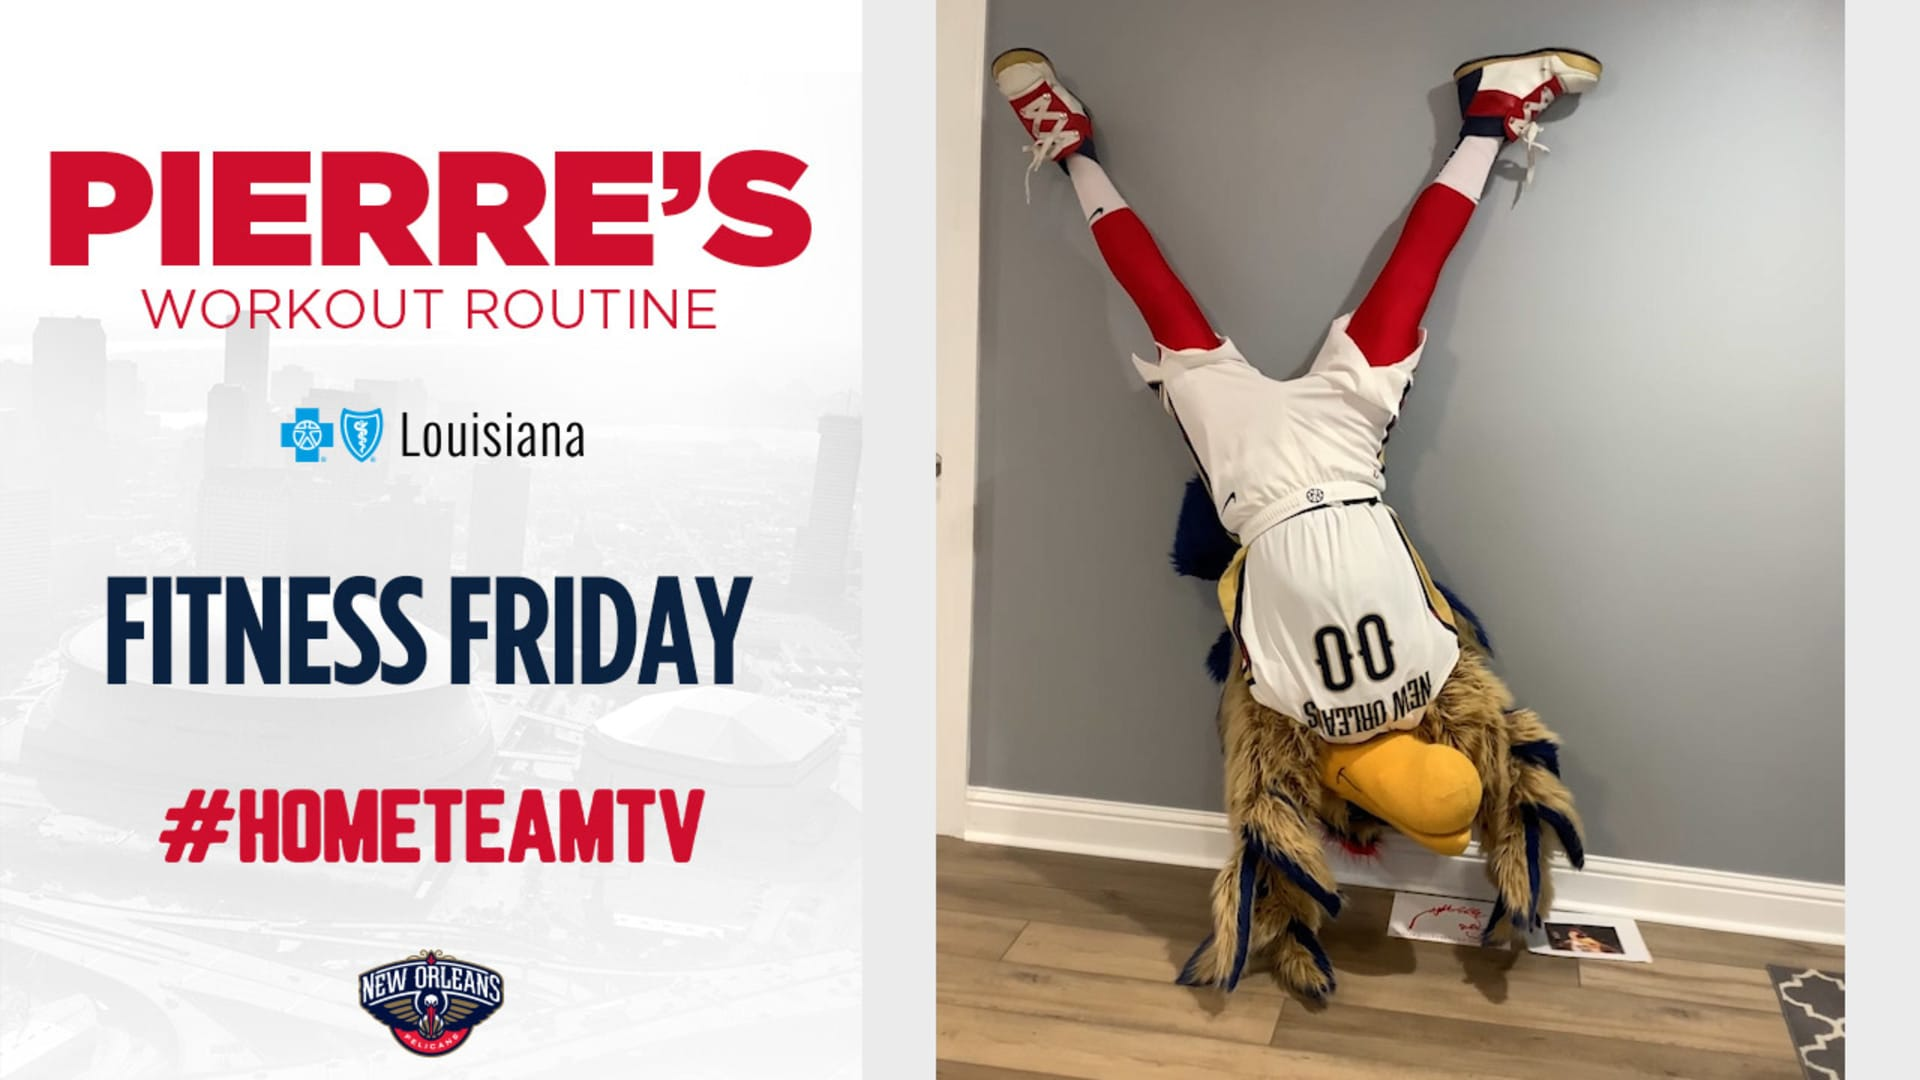 HomeTeamTV: Fitness Friday with Pierre, 5/1/20